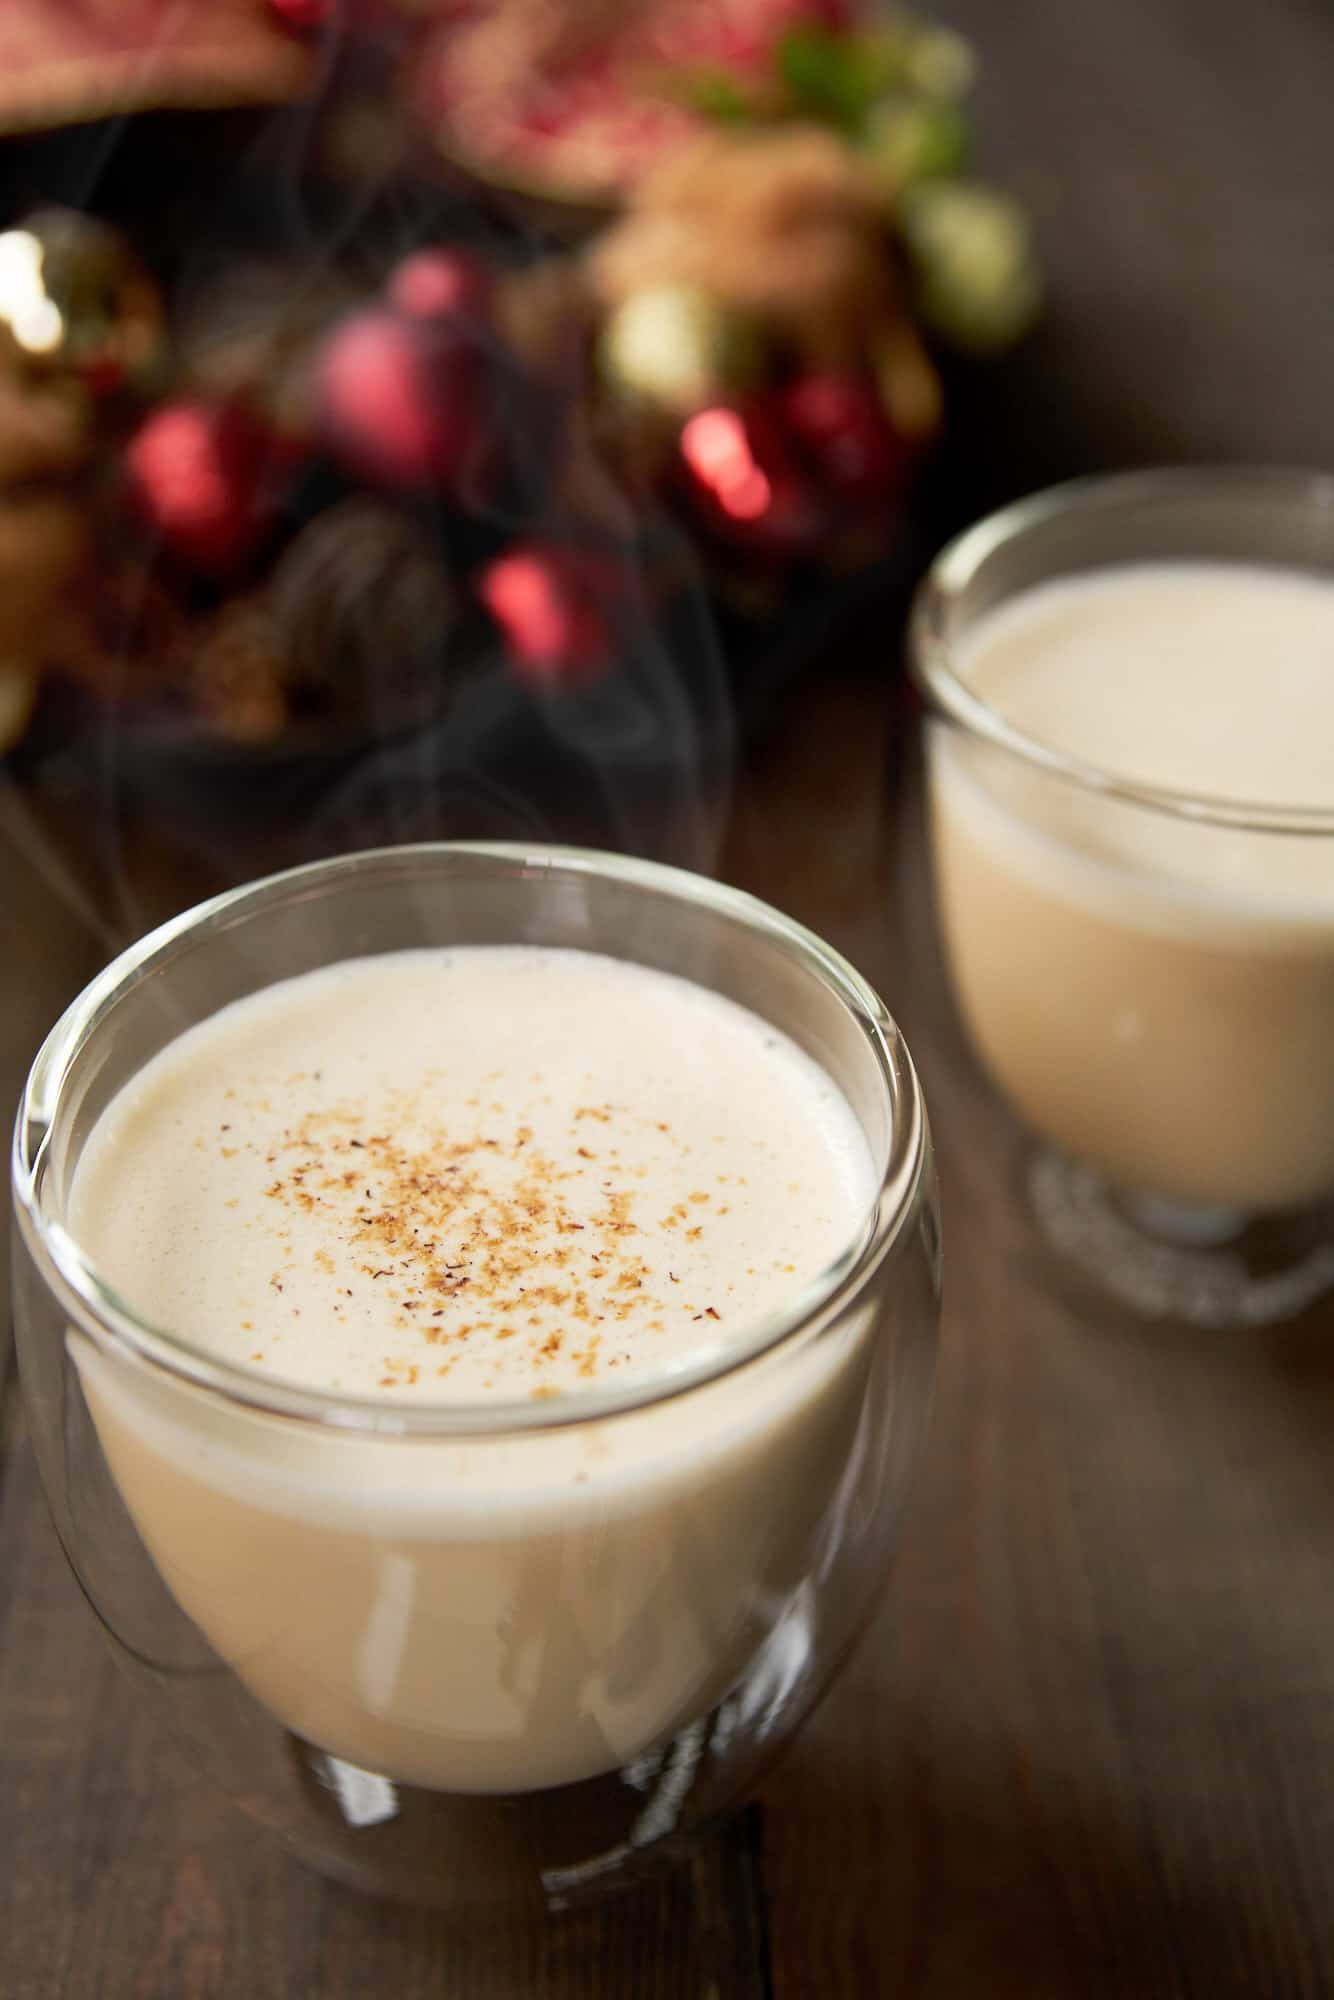 Easy delicious hot eggnog recipe that's redolent of brandy and nutmeg with a frothy head that makes this holiday treat all the more decadent.